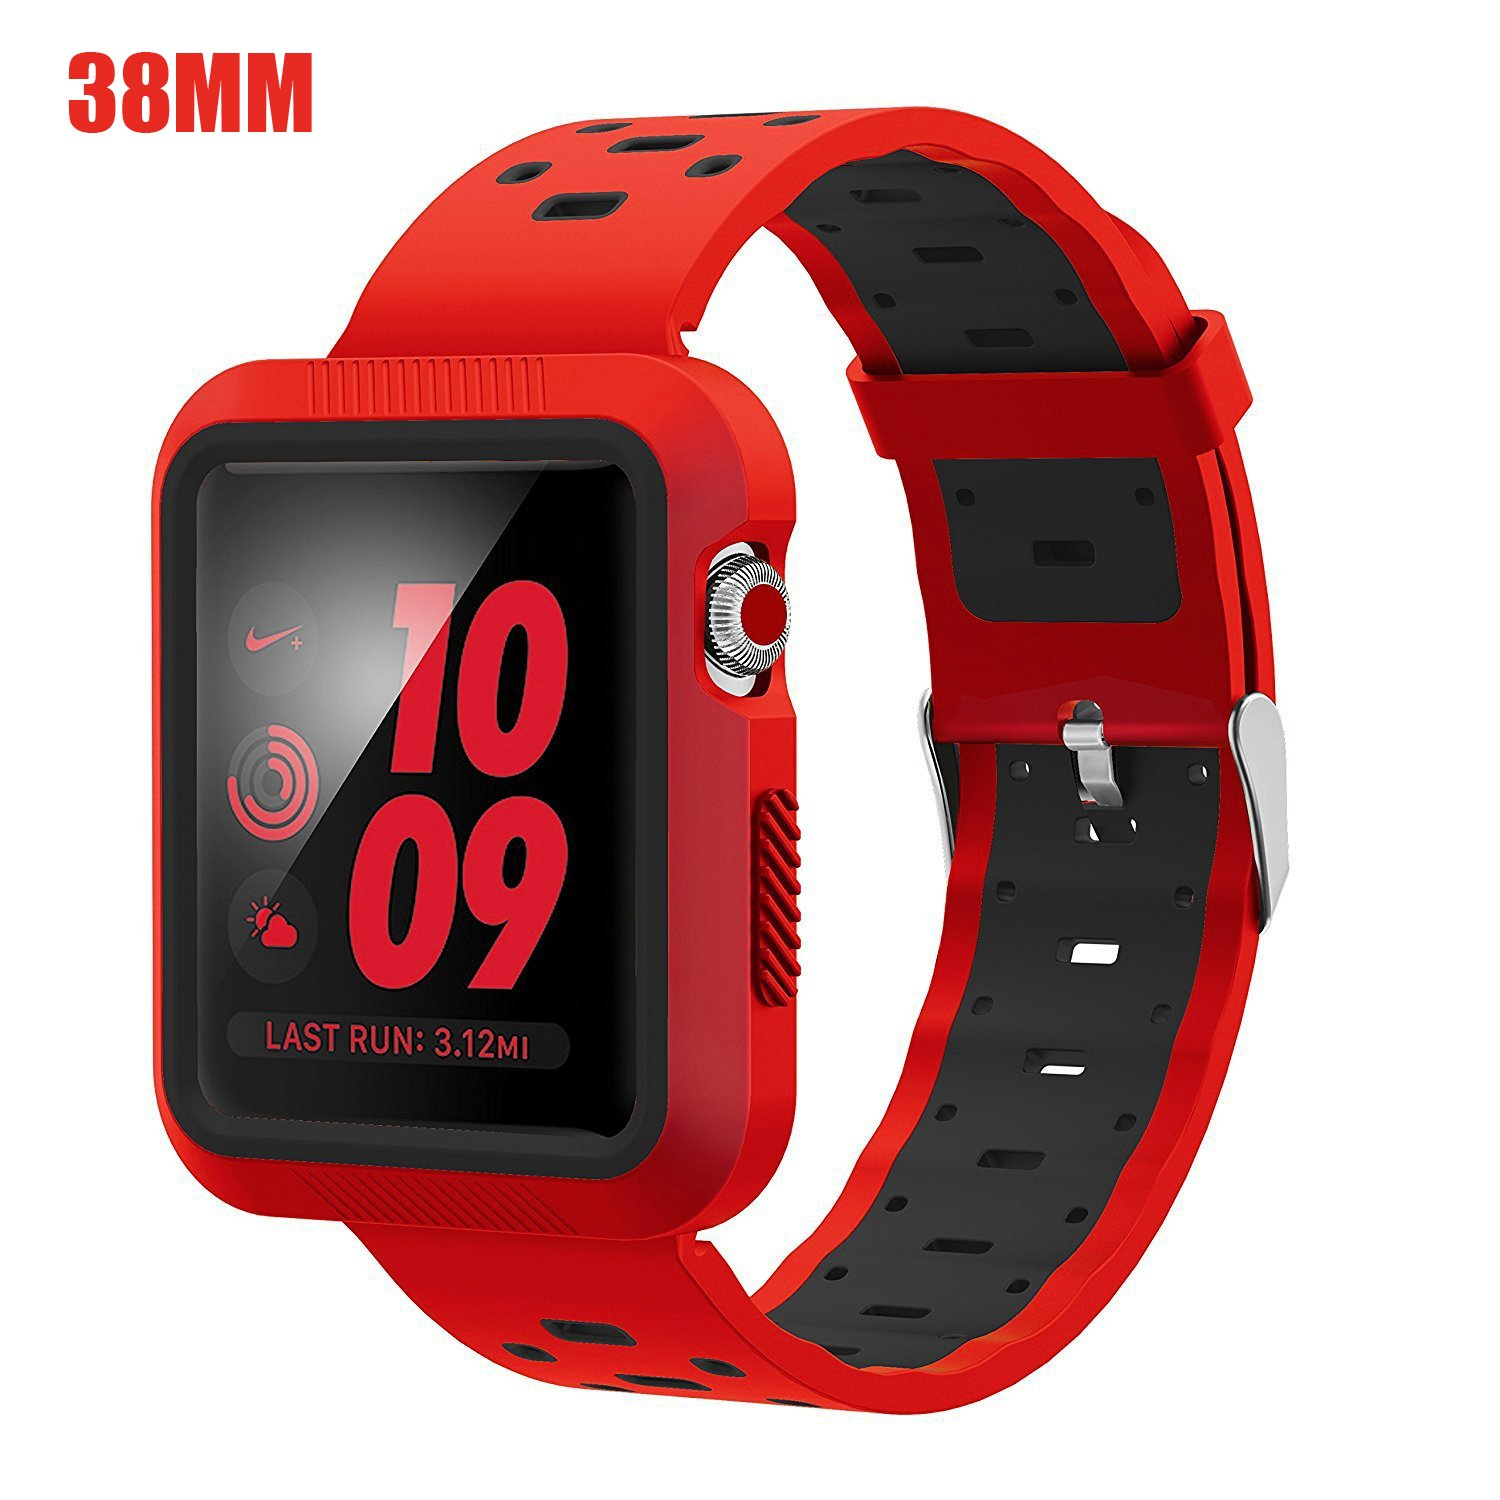 EloBeth Compatible Apple Watch Band 38mm with Case, Soft Silicone Sport Strap iWatch Band with Shock Resistant Protective Case for Apple Watch Band Series 3/2/1 Nike+ Sport Edition (Red/Black, 38mm)